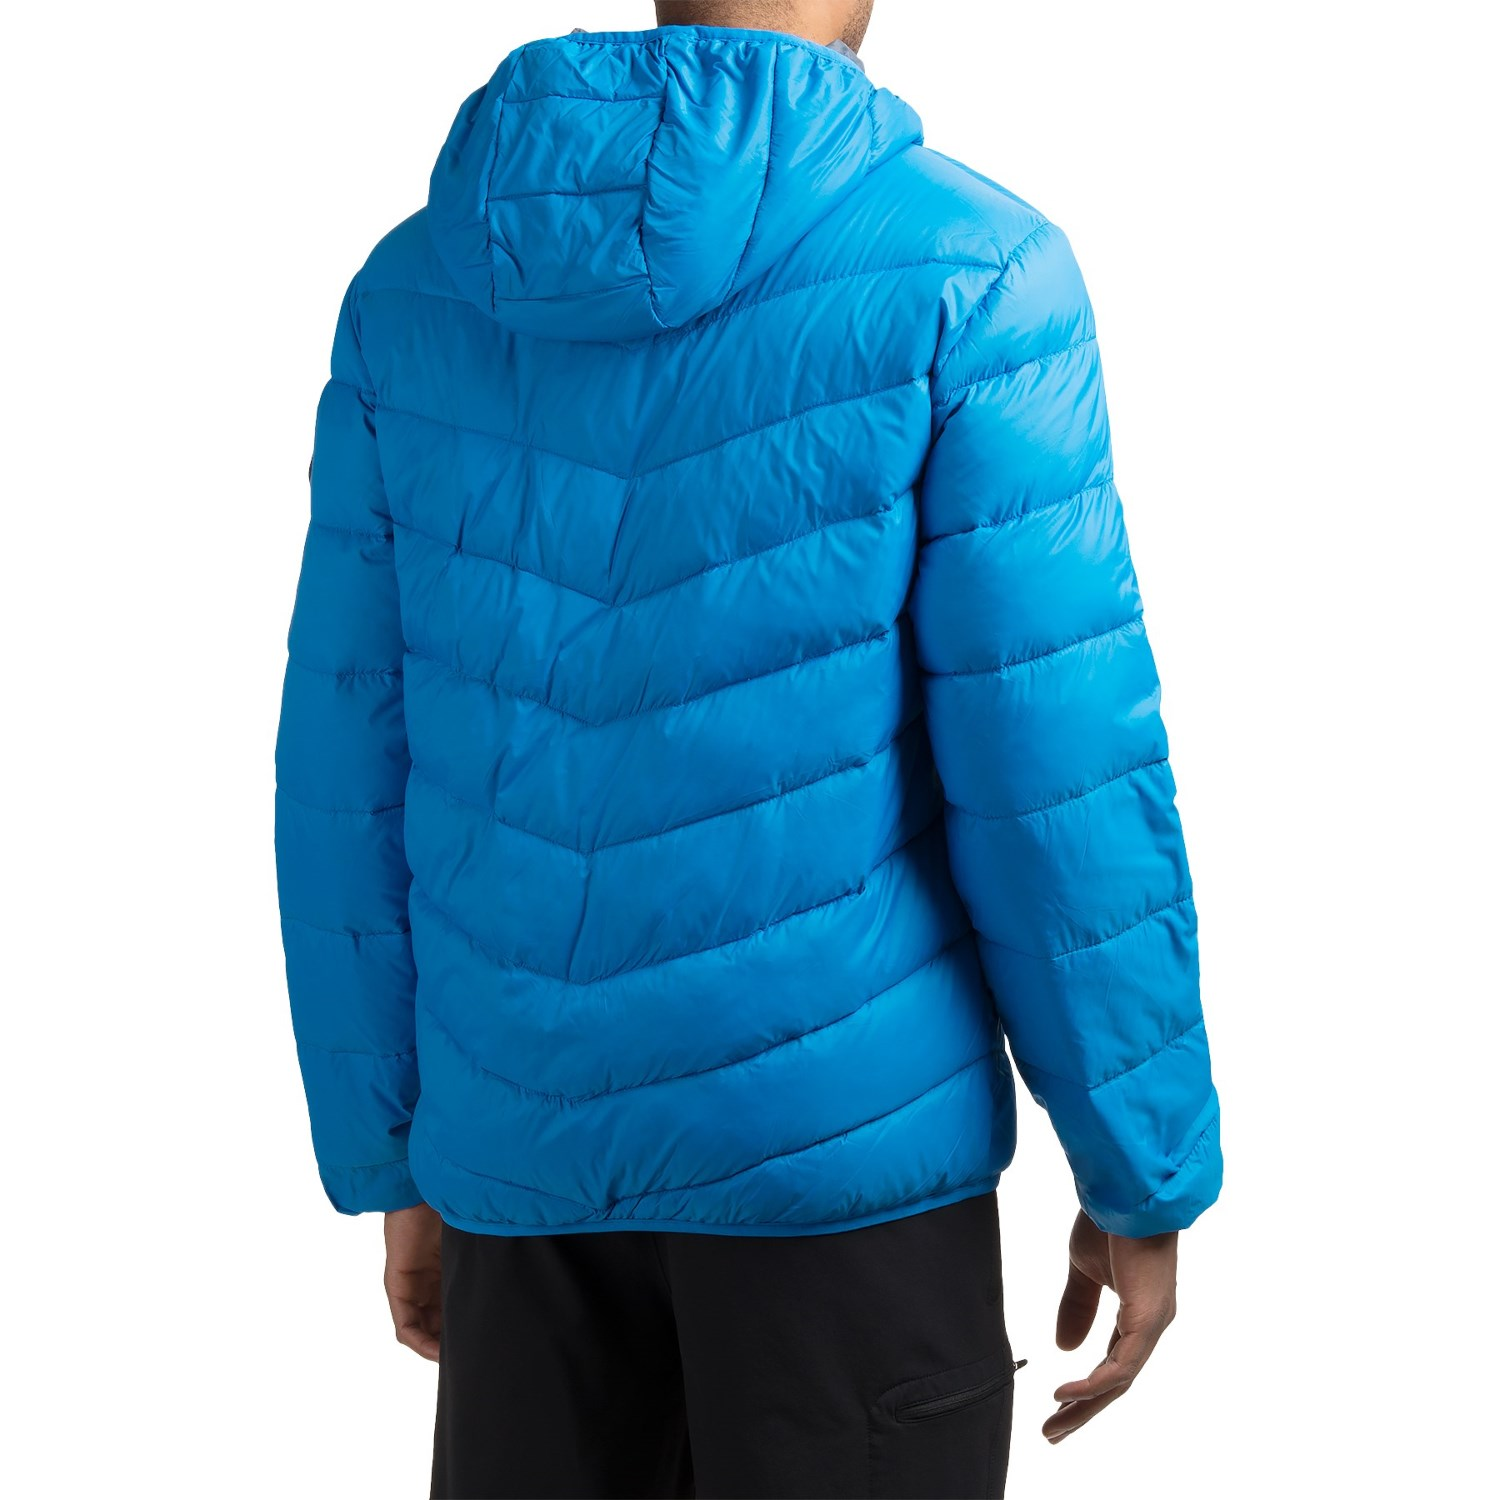 Trespass Stormer Down Ski Jacket (For Men) - Save 64%